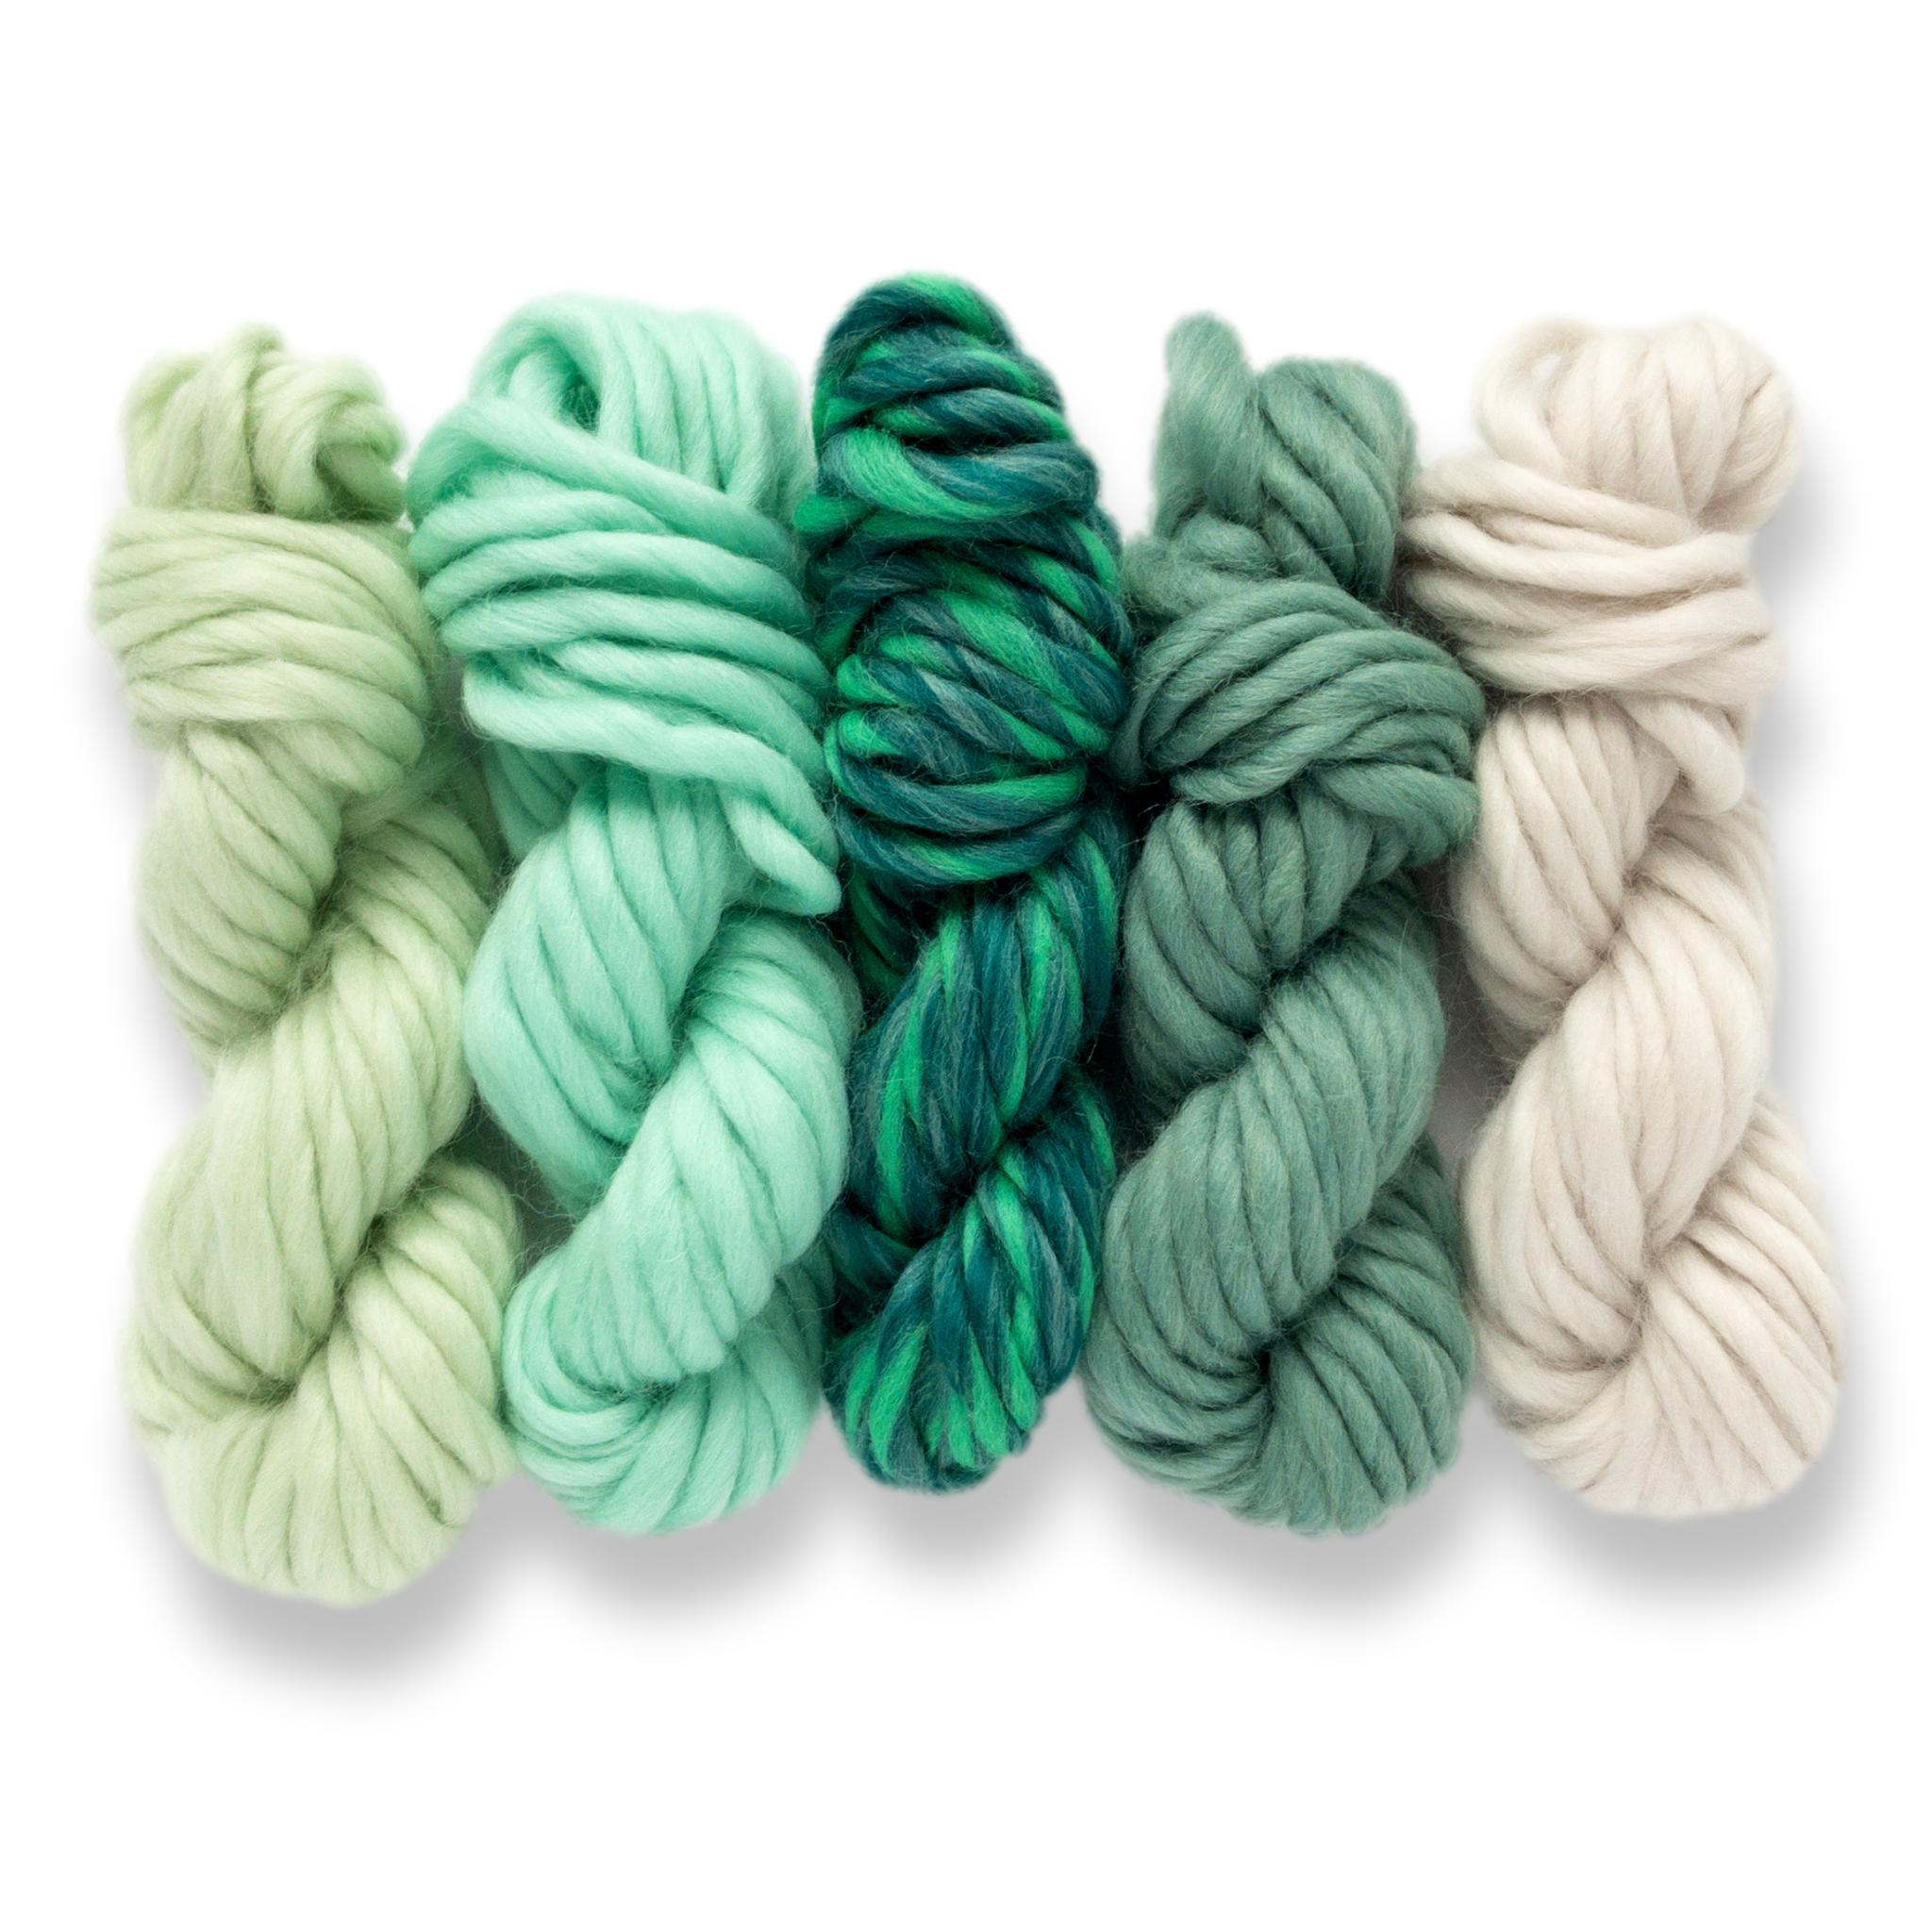 Seafoam Yarn Pack